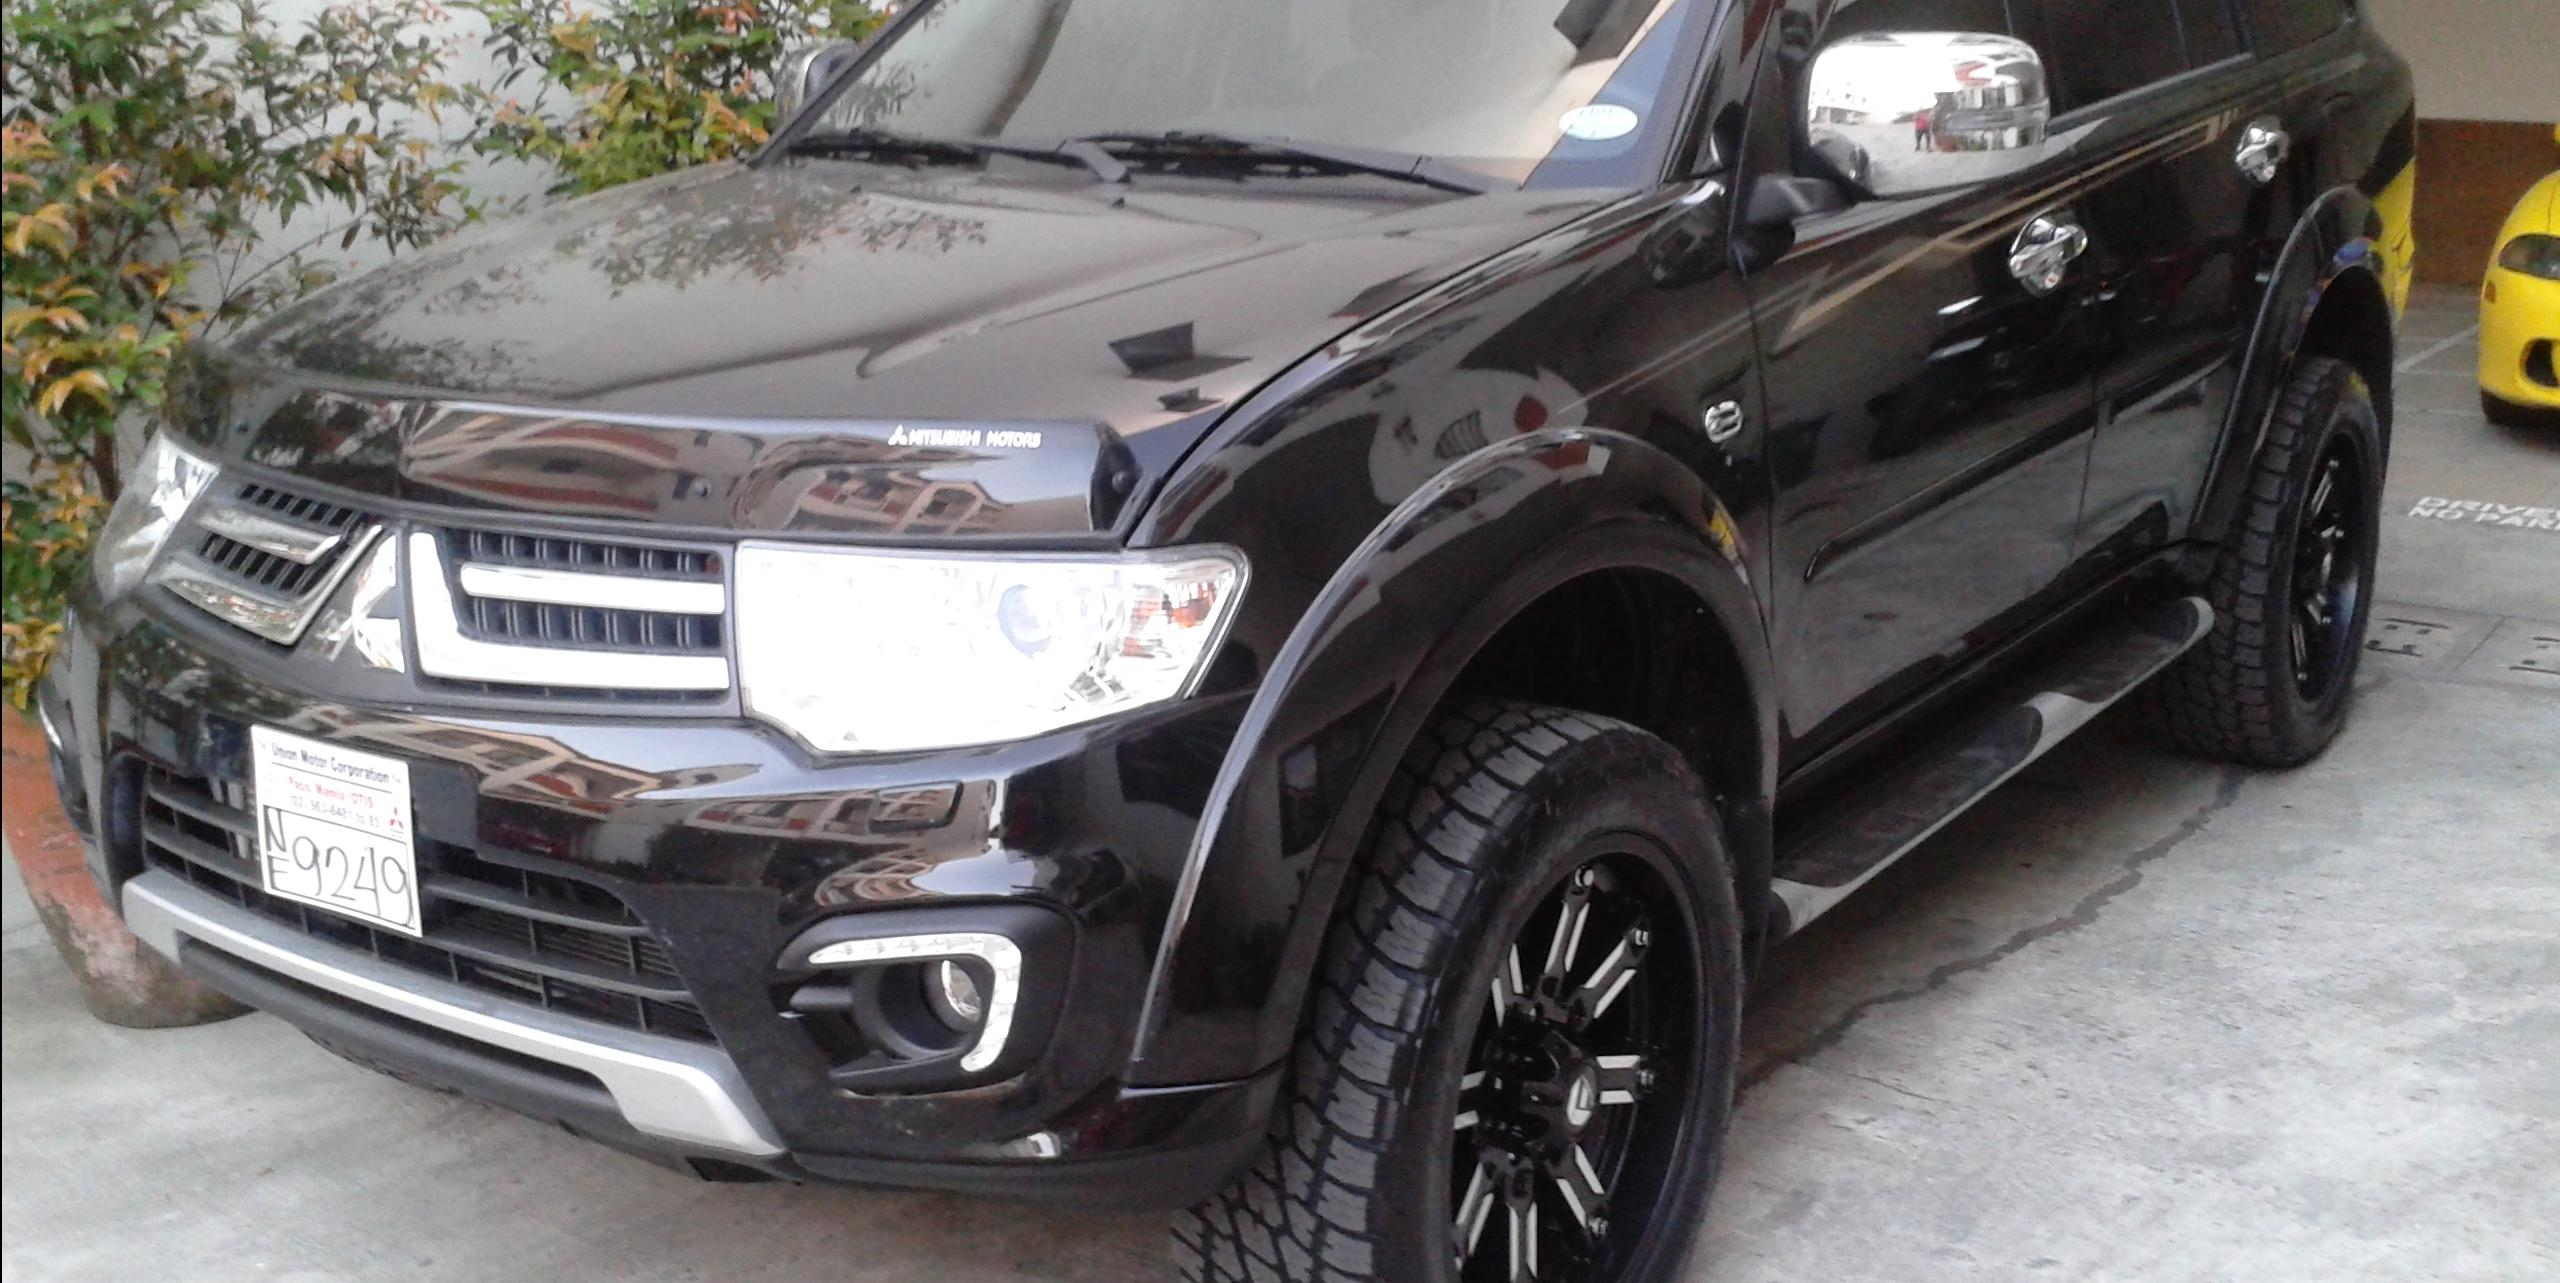 4g63ty 2015 Mitsubishi Montero Sportlimited Sport Utility 4d Specs